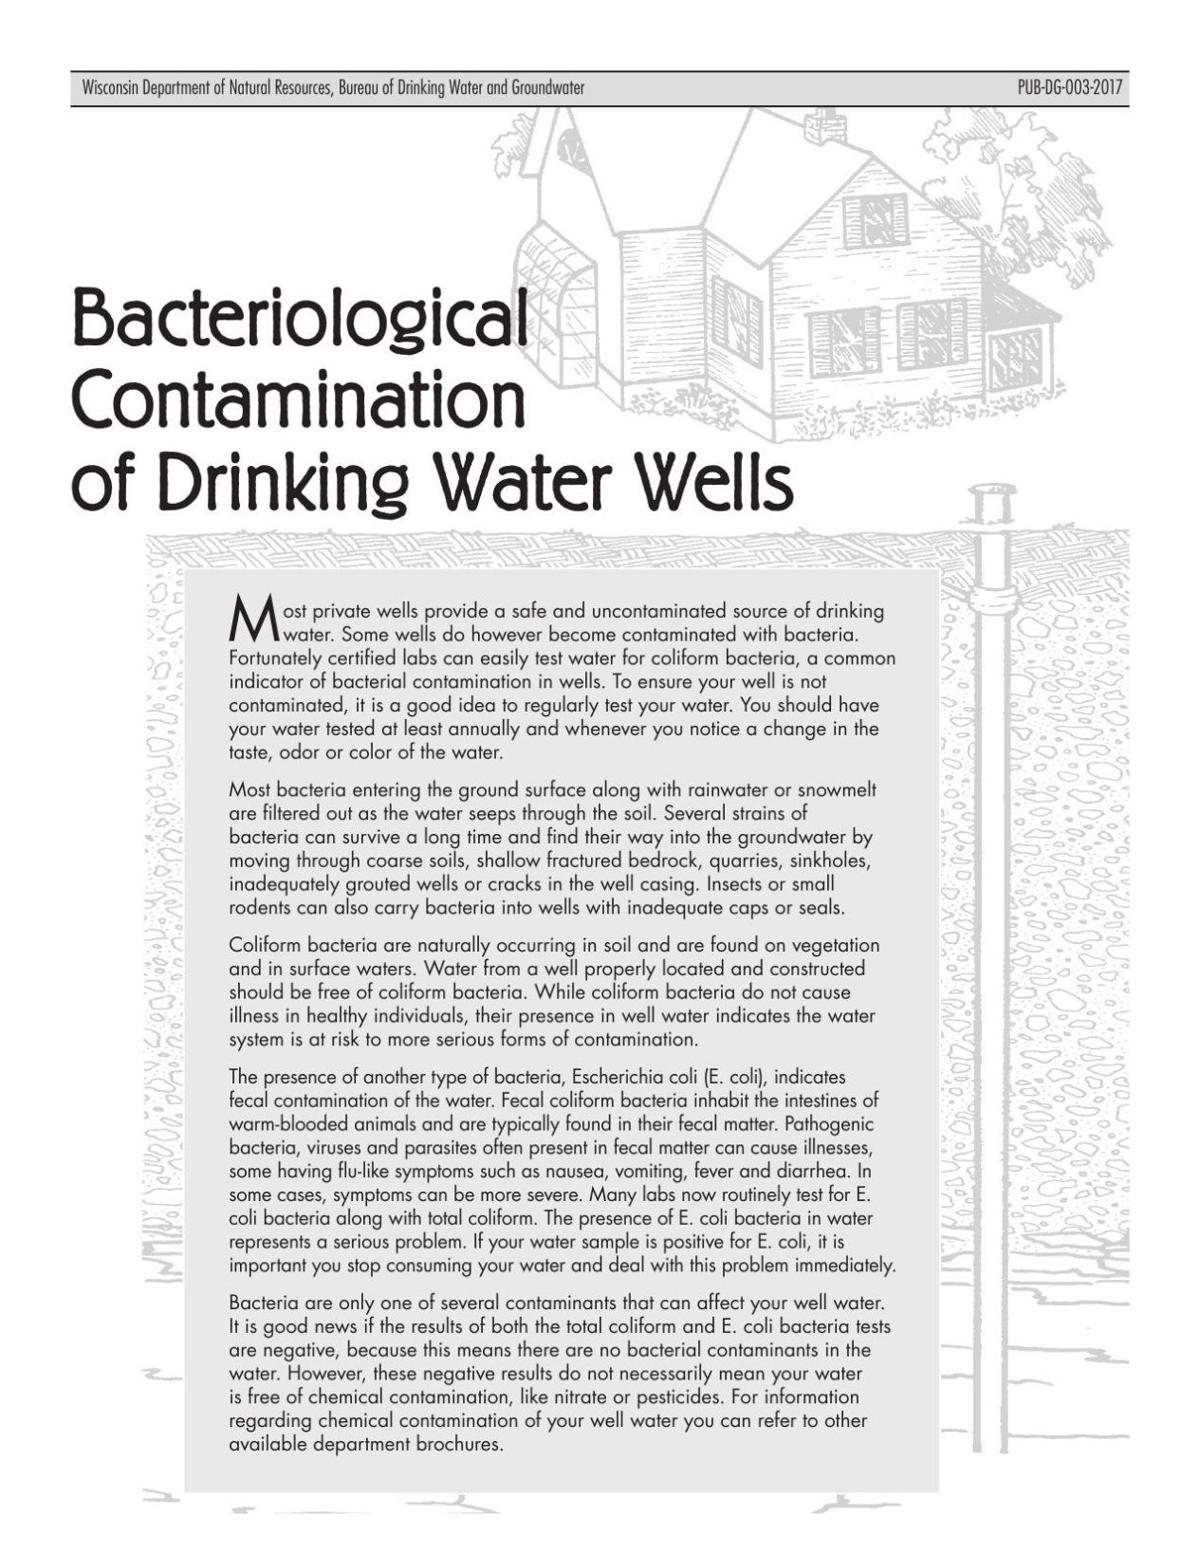 Facts about bacterial contamination of drinking water